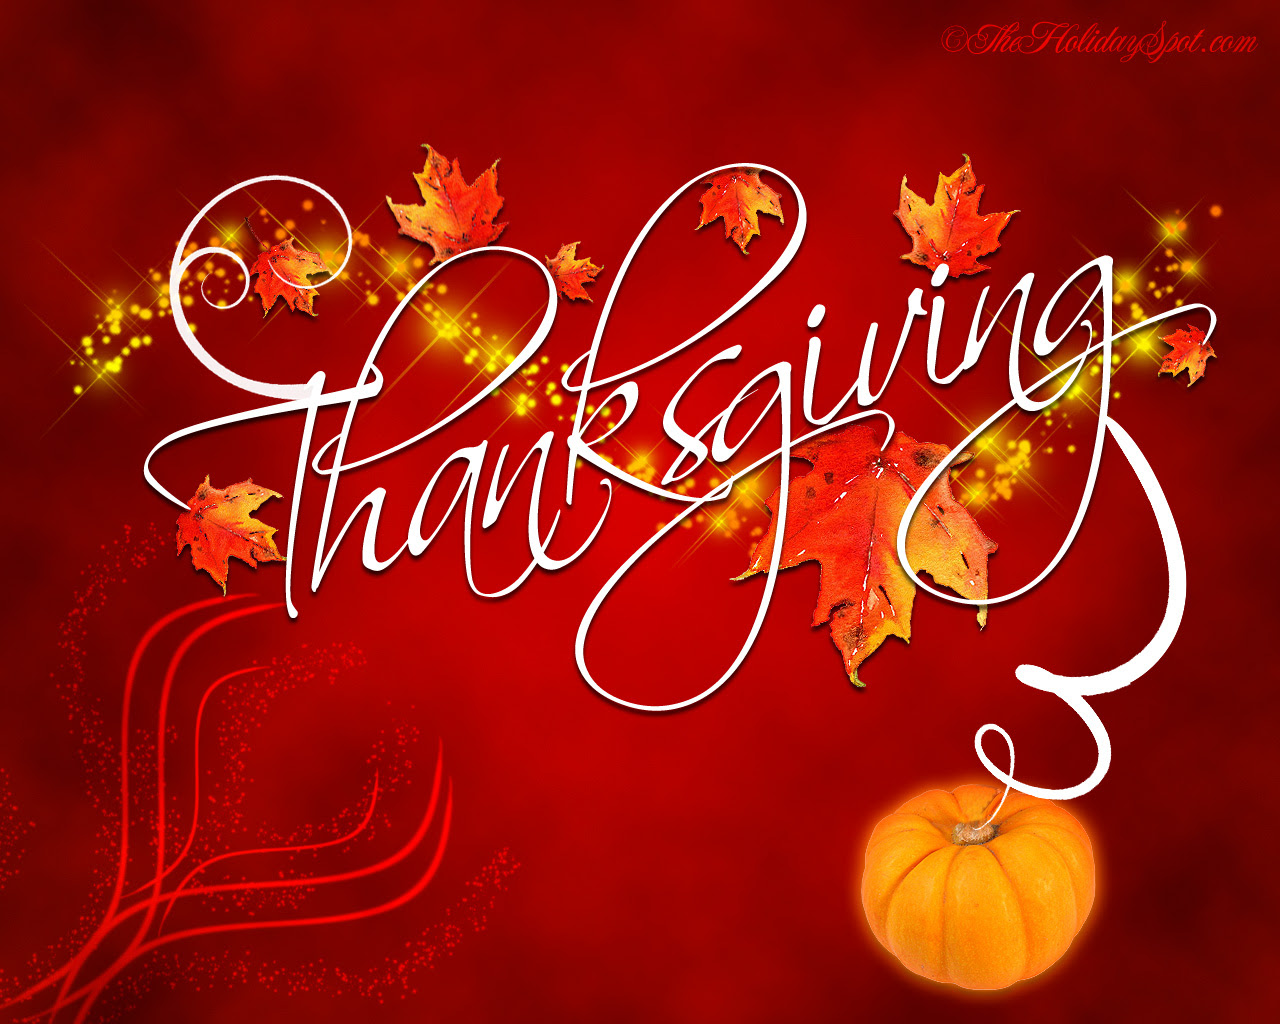 http://www.theholidayspot.com/thanksgiving/wallpapers/new_images/thanksgiving-day-wallpaper.jpg